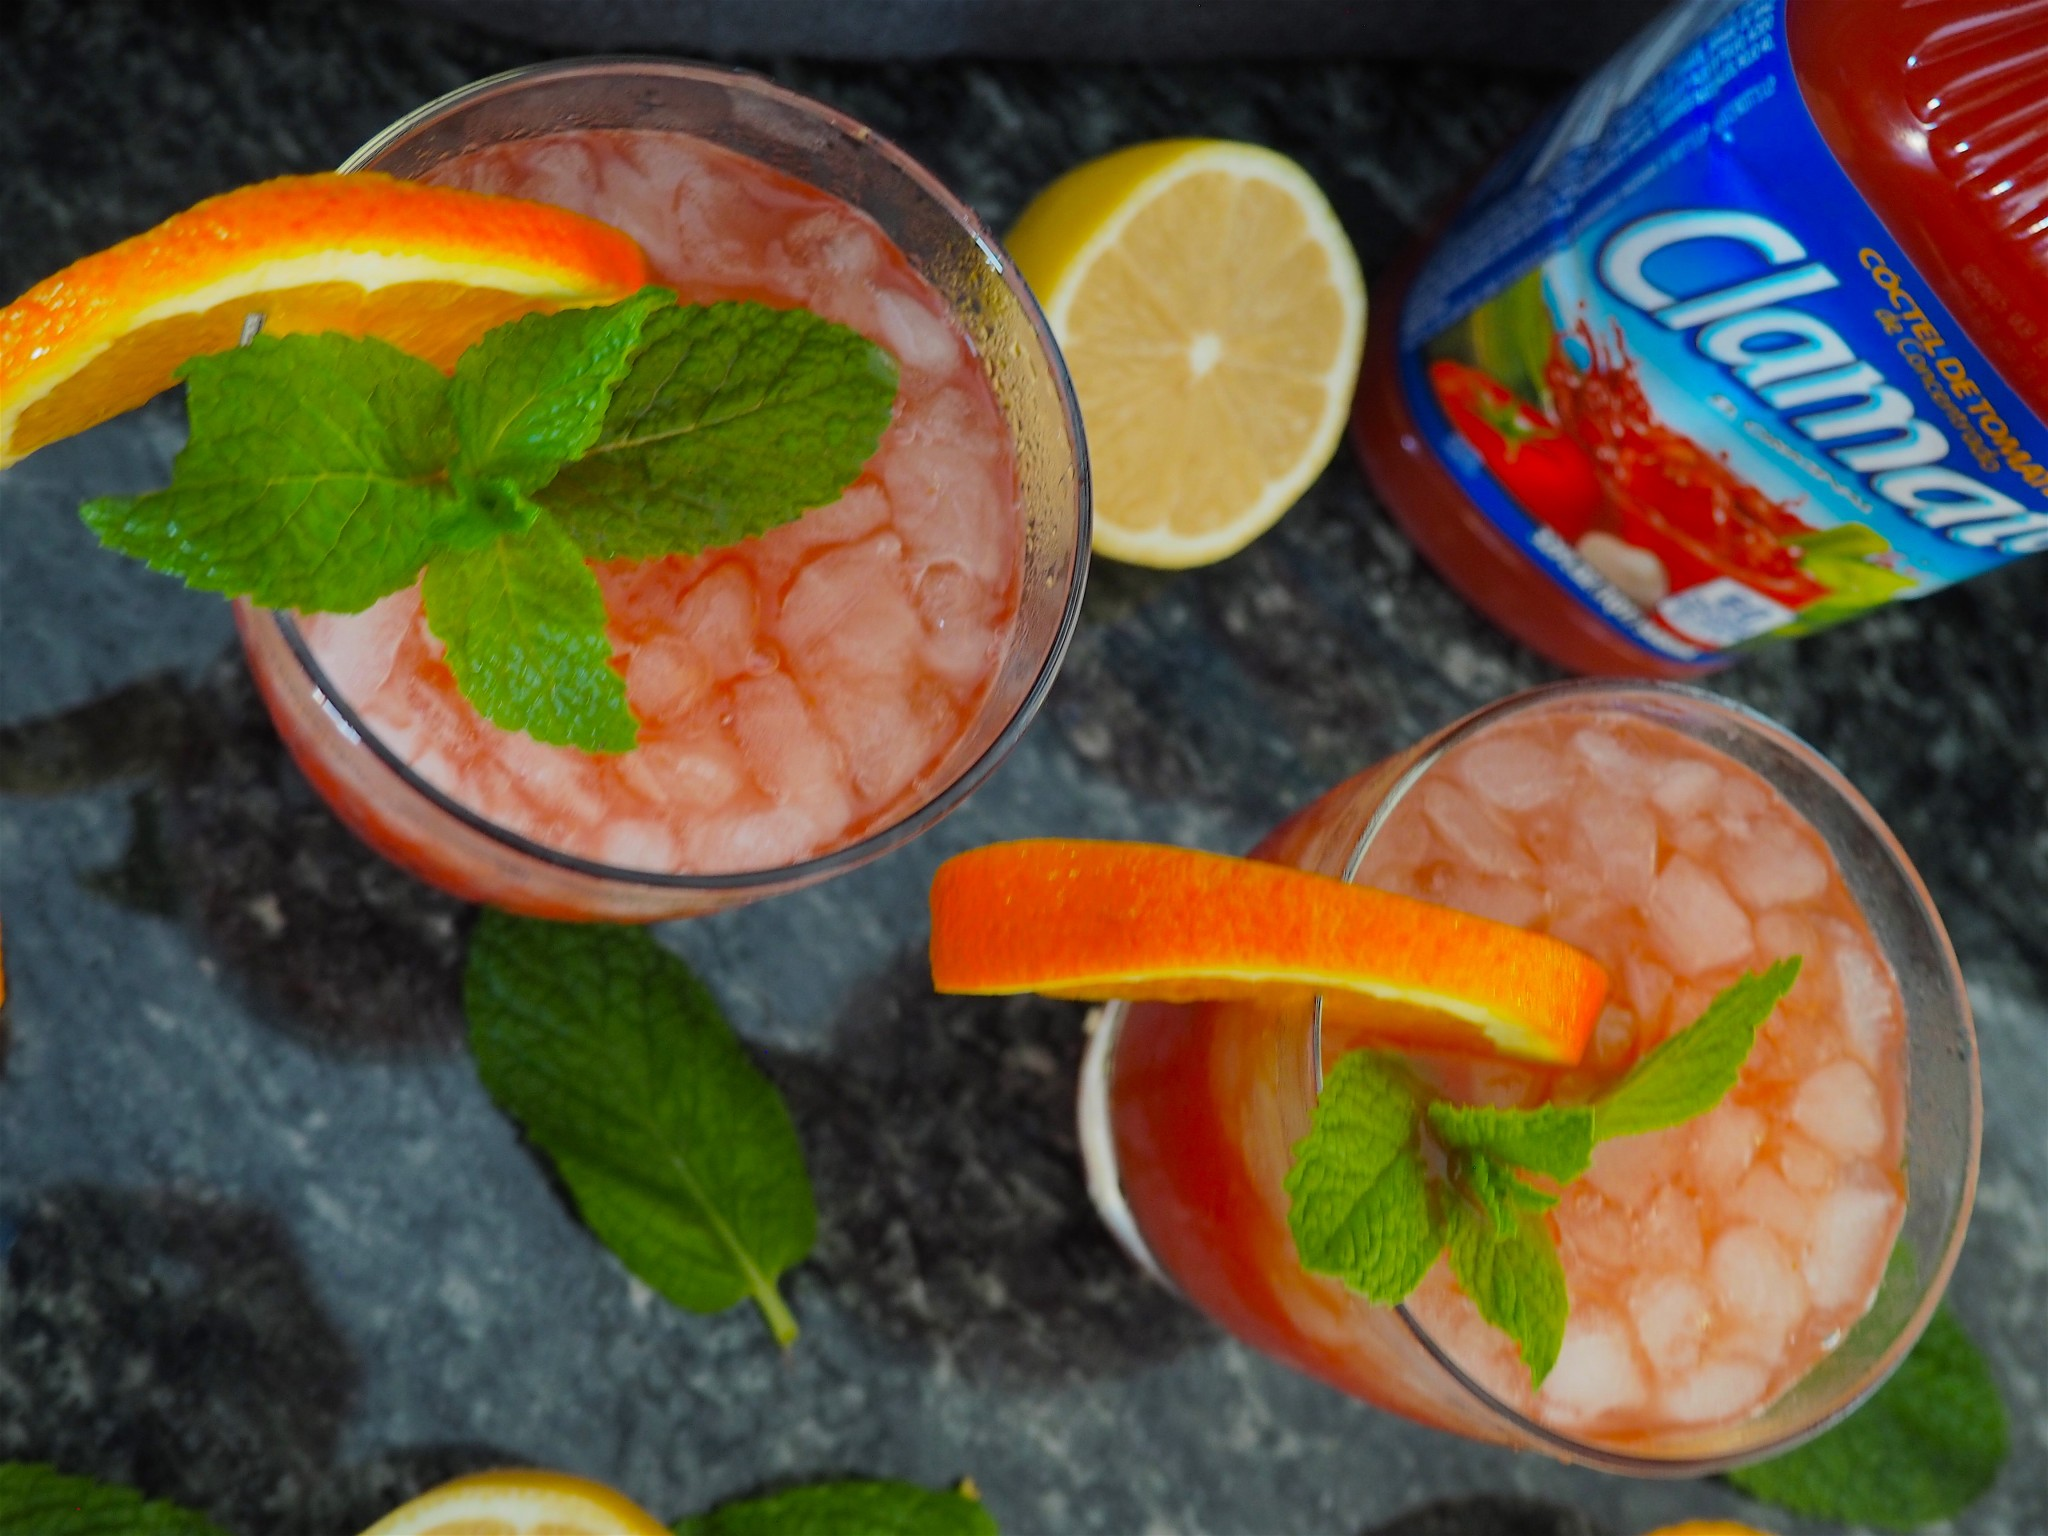 Clamato Holiday Refresher9